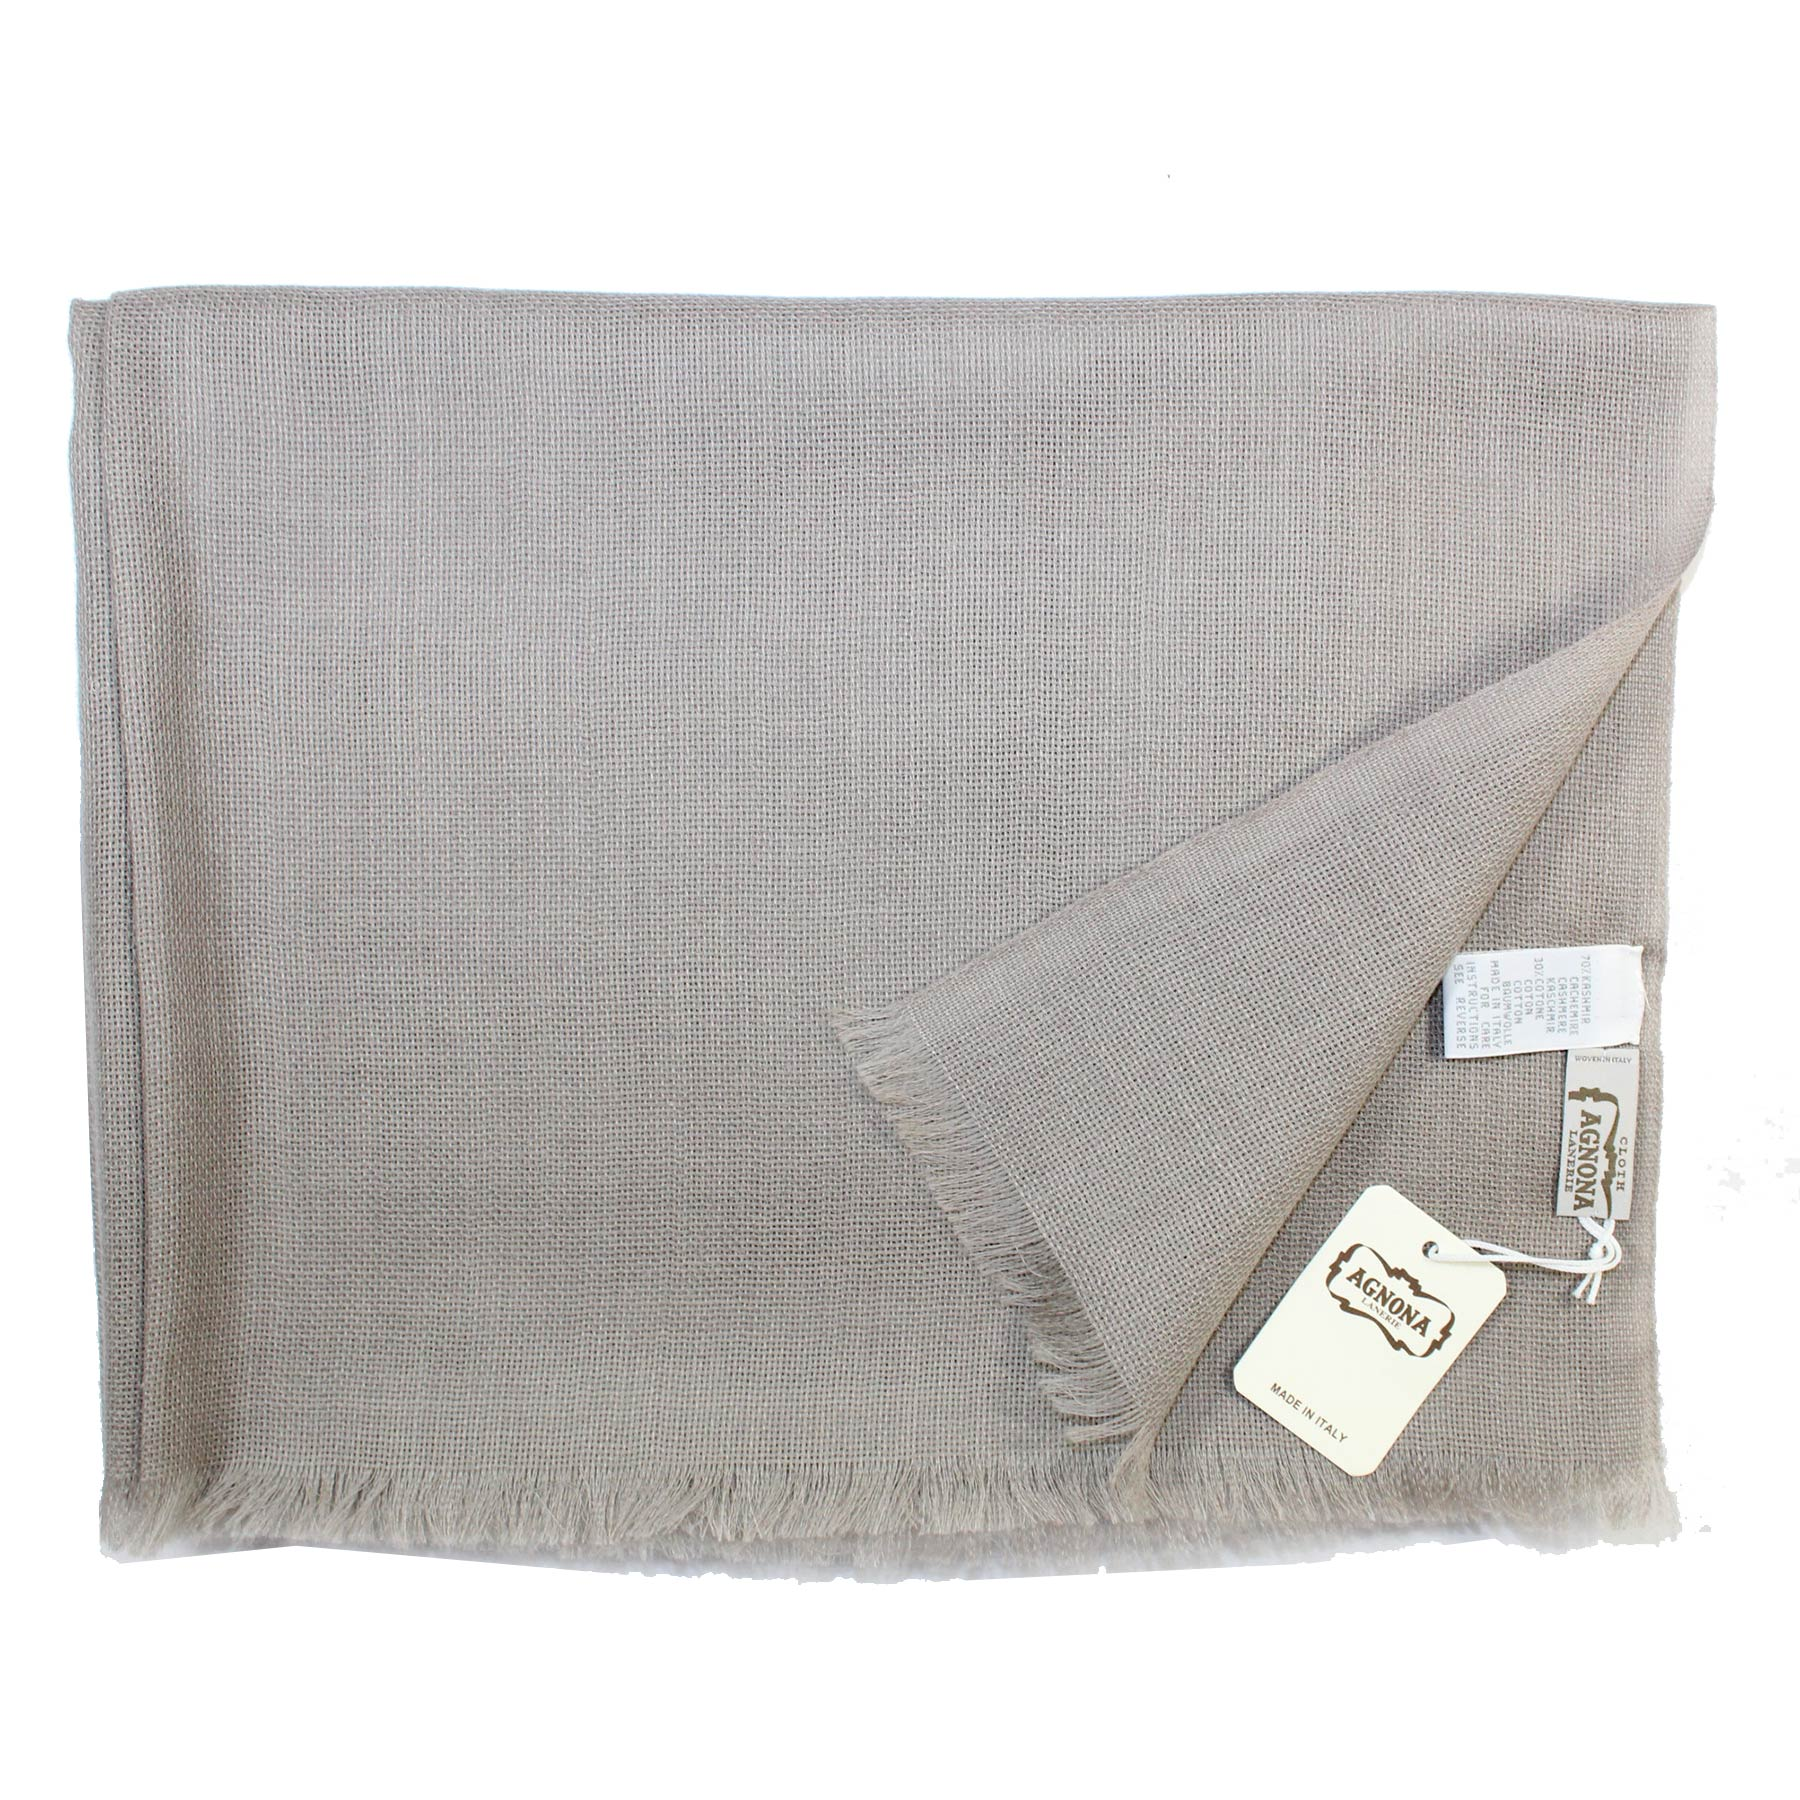 Agnona Scarf Taupe Gray Design - Cashmere Cotton Shawl SALE